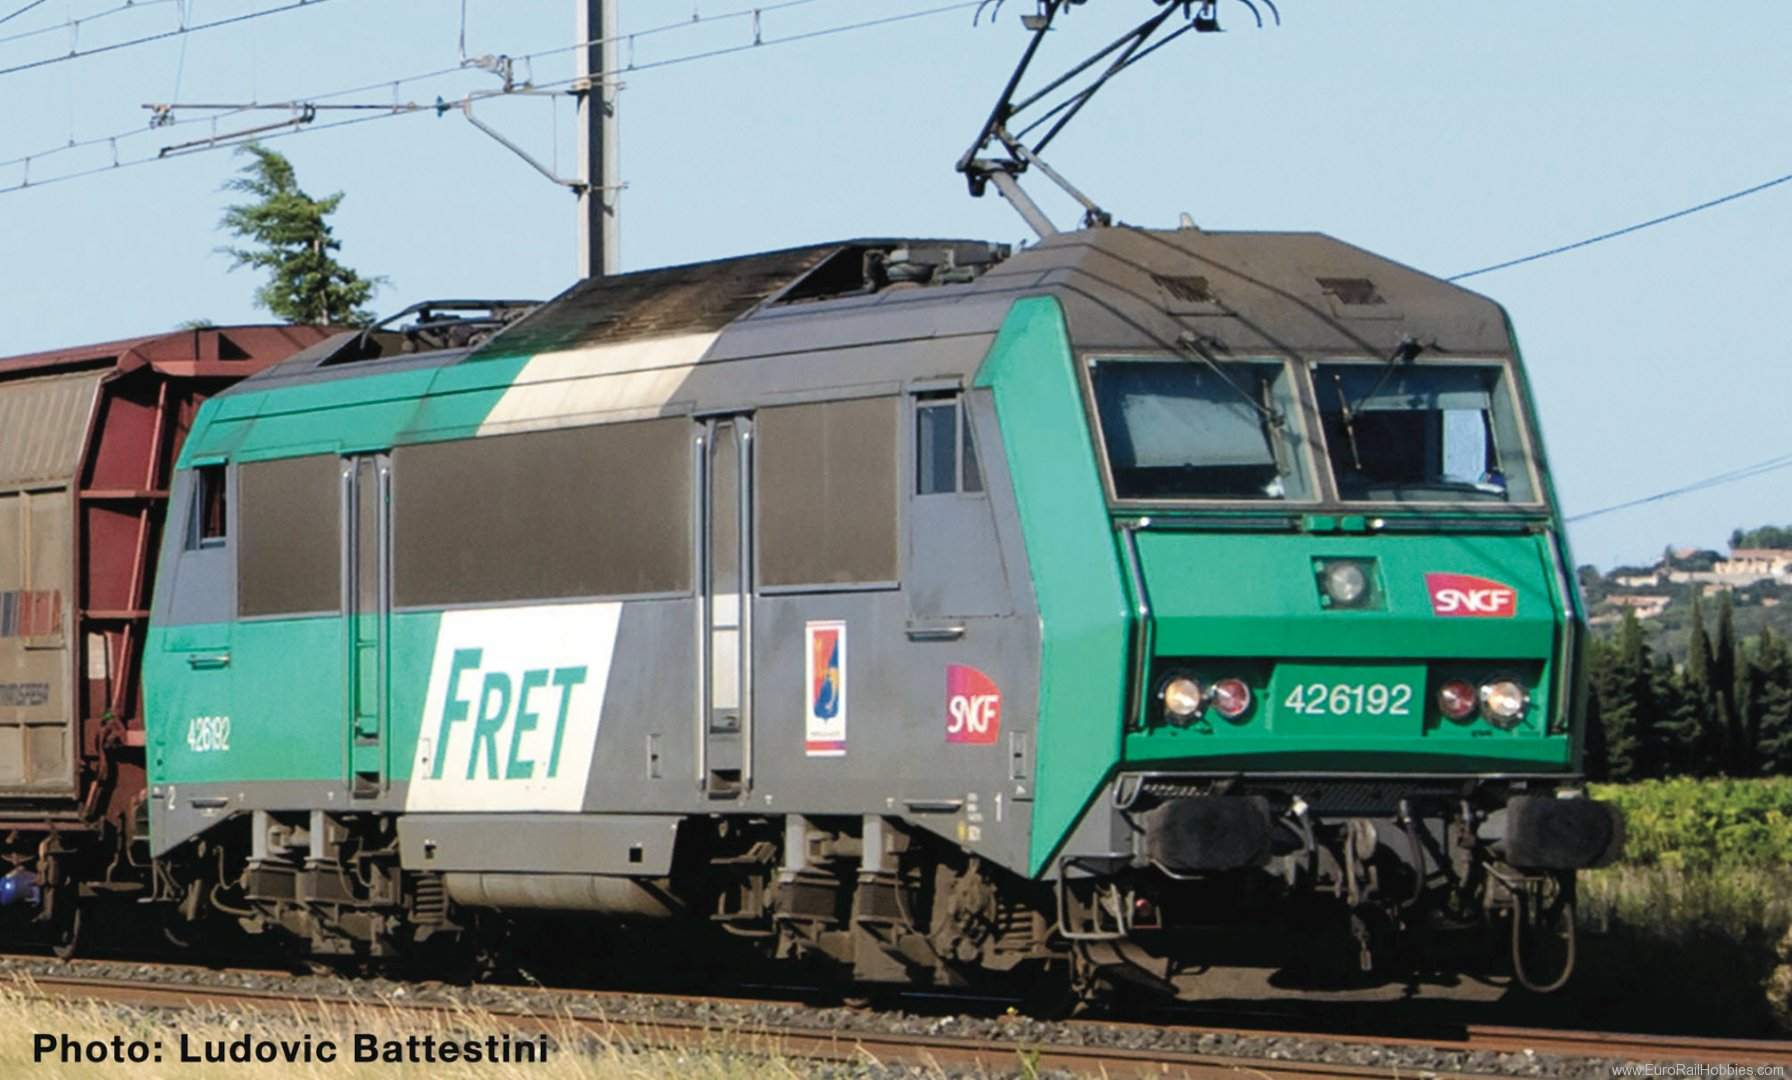 Roco 79862 Roco SNCF Electric locomotive BB26000 'FRET'